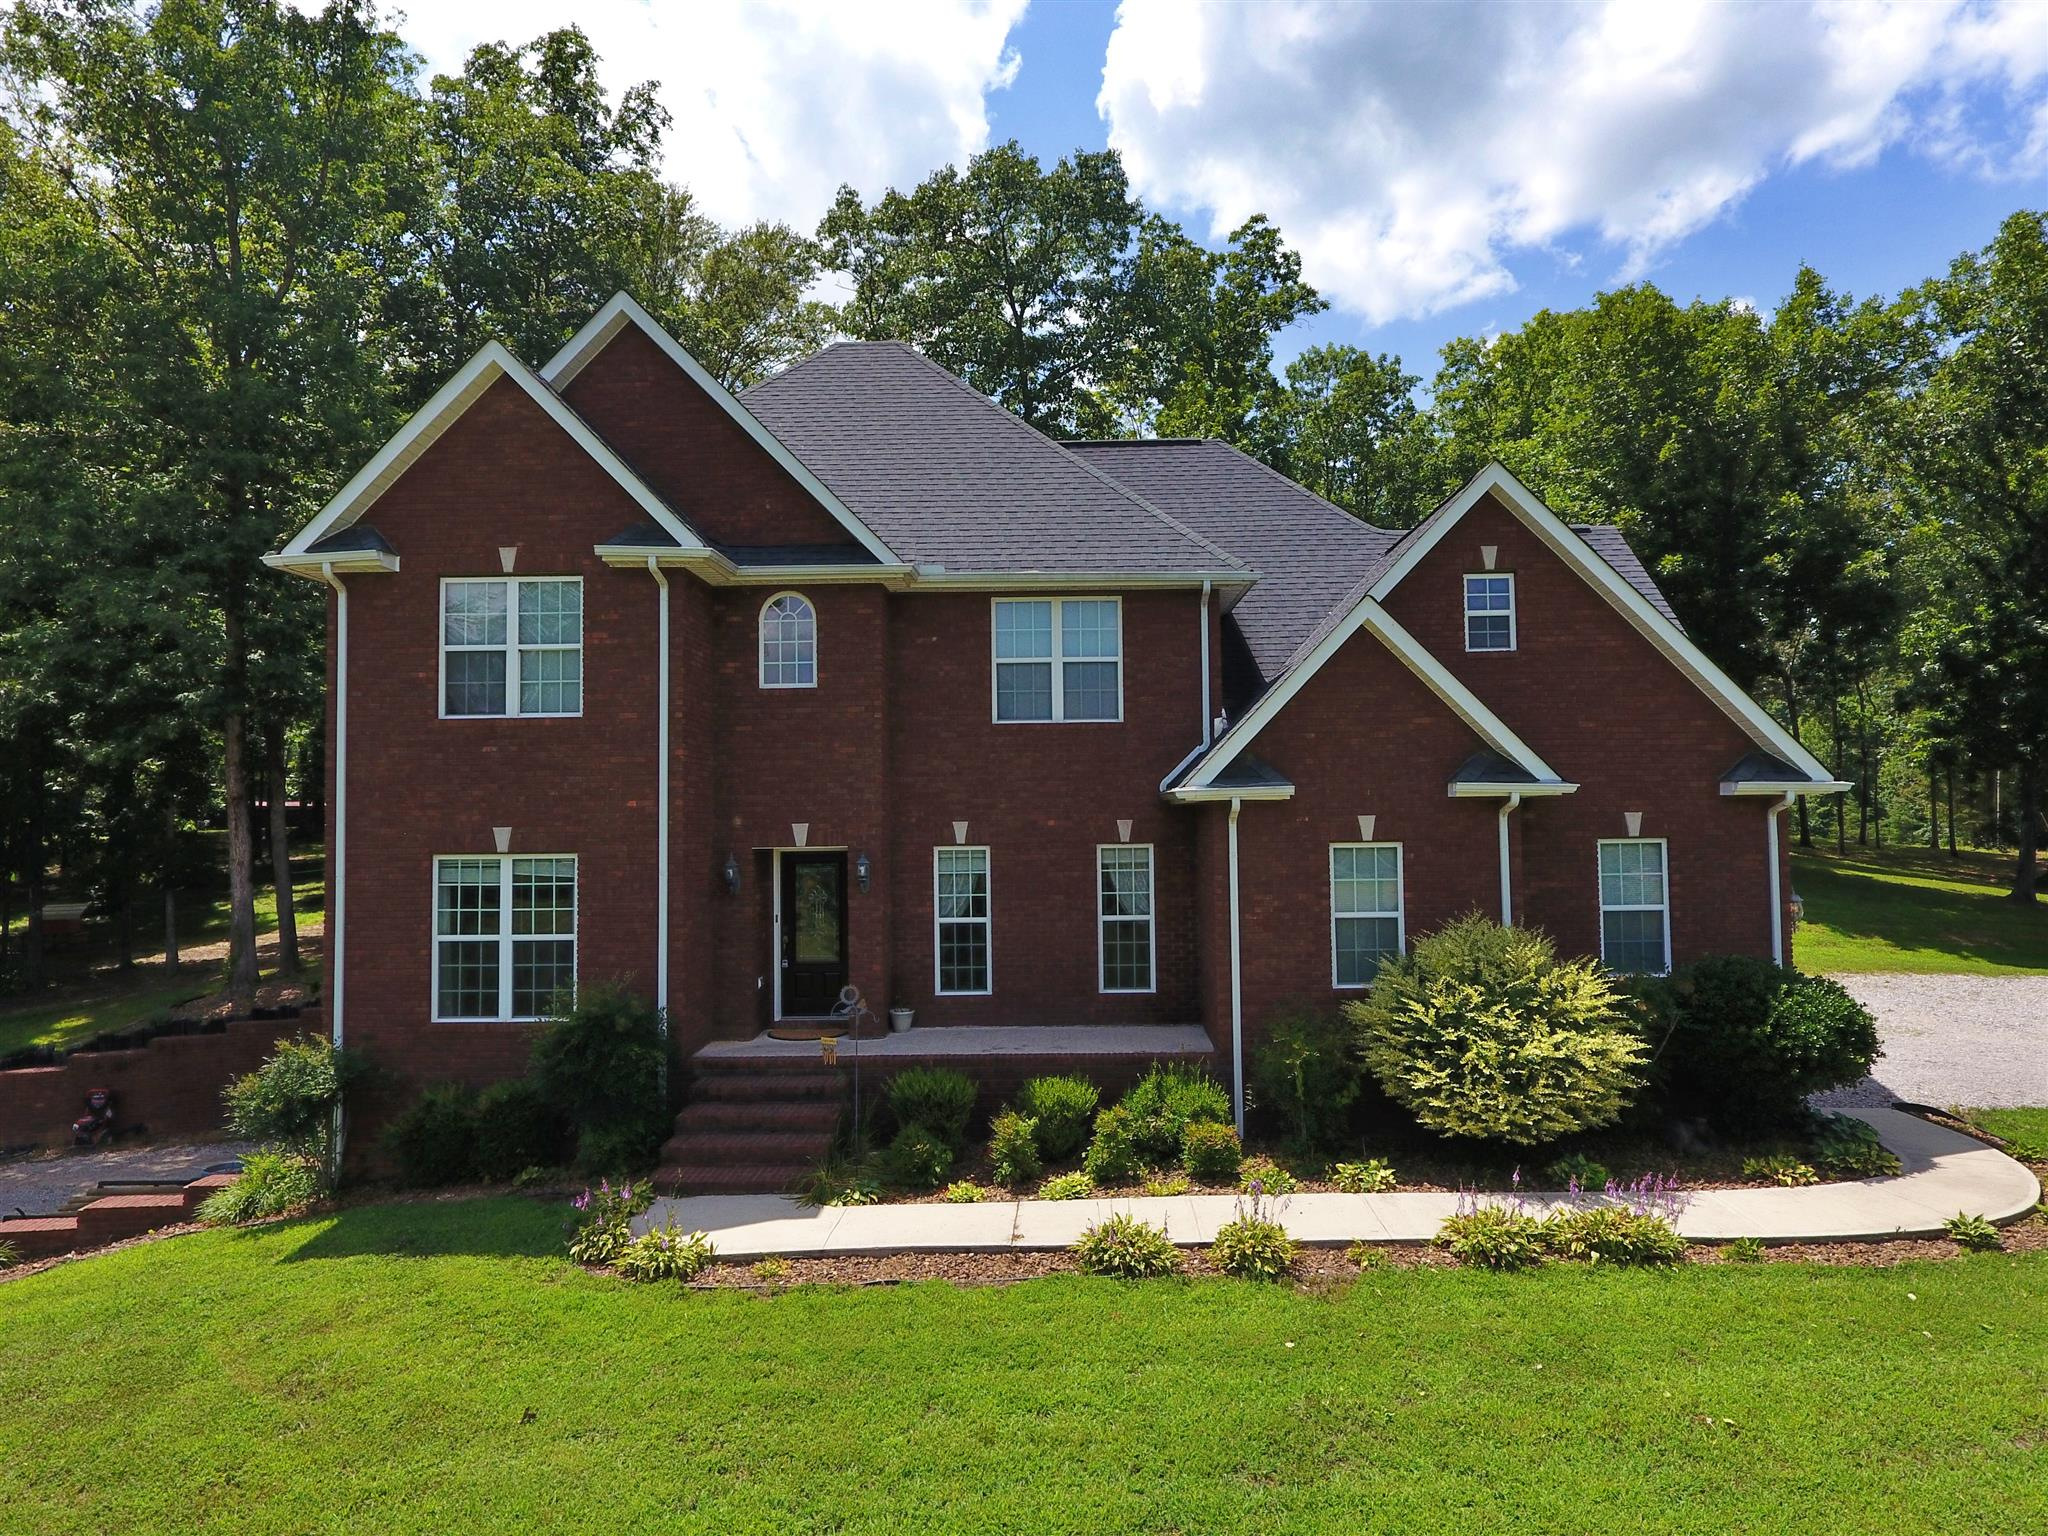 201 Drake Rd, McMinnville, TN 37110 - McMinnville, TN real estate listing